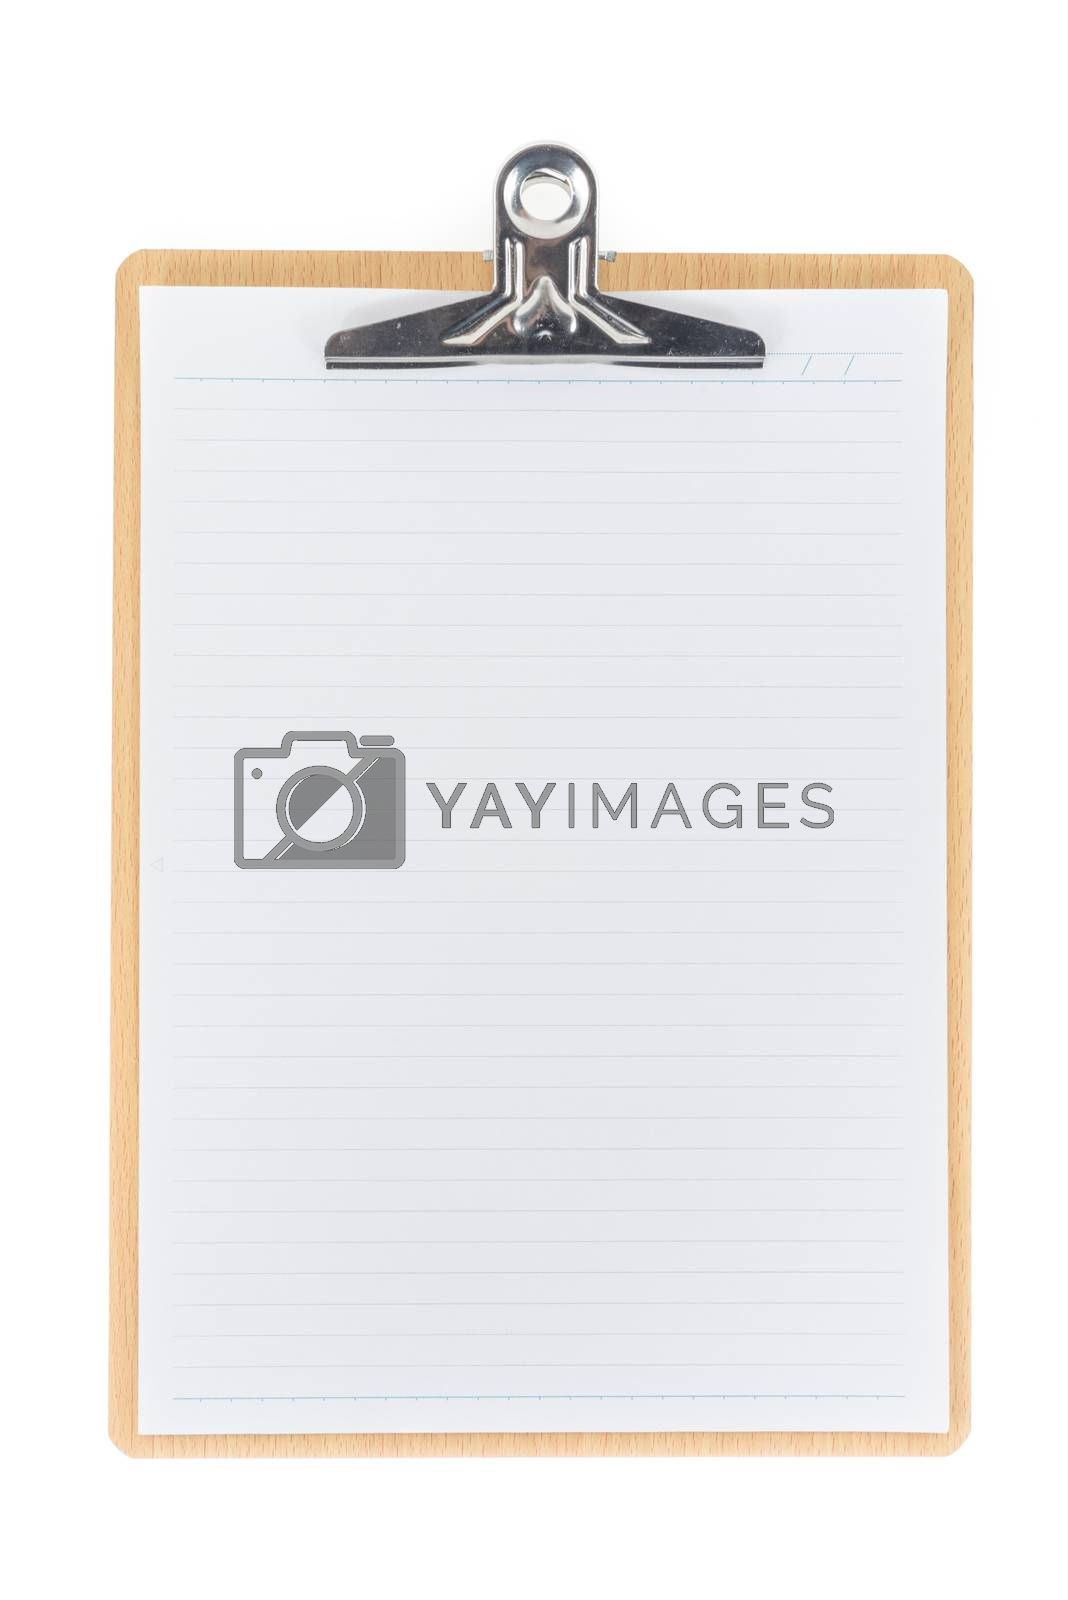 Royalty free image of Wooden Clipboard using for attach planning paper by iamway